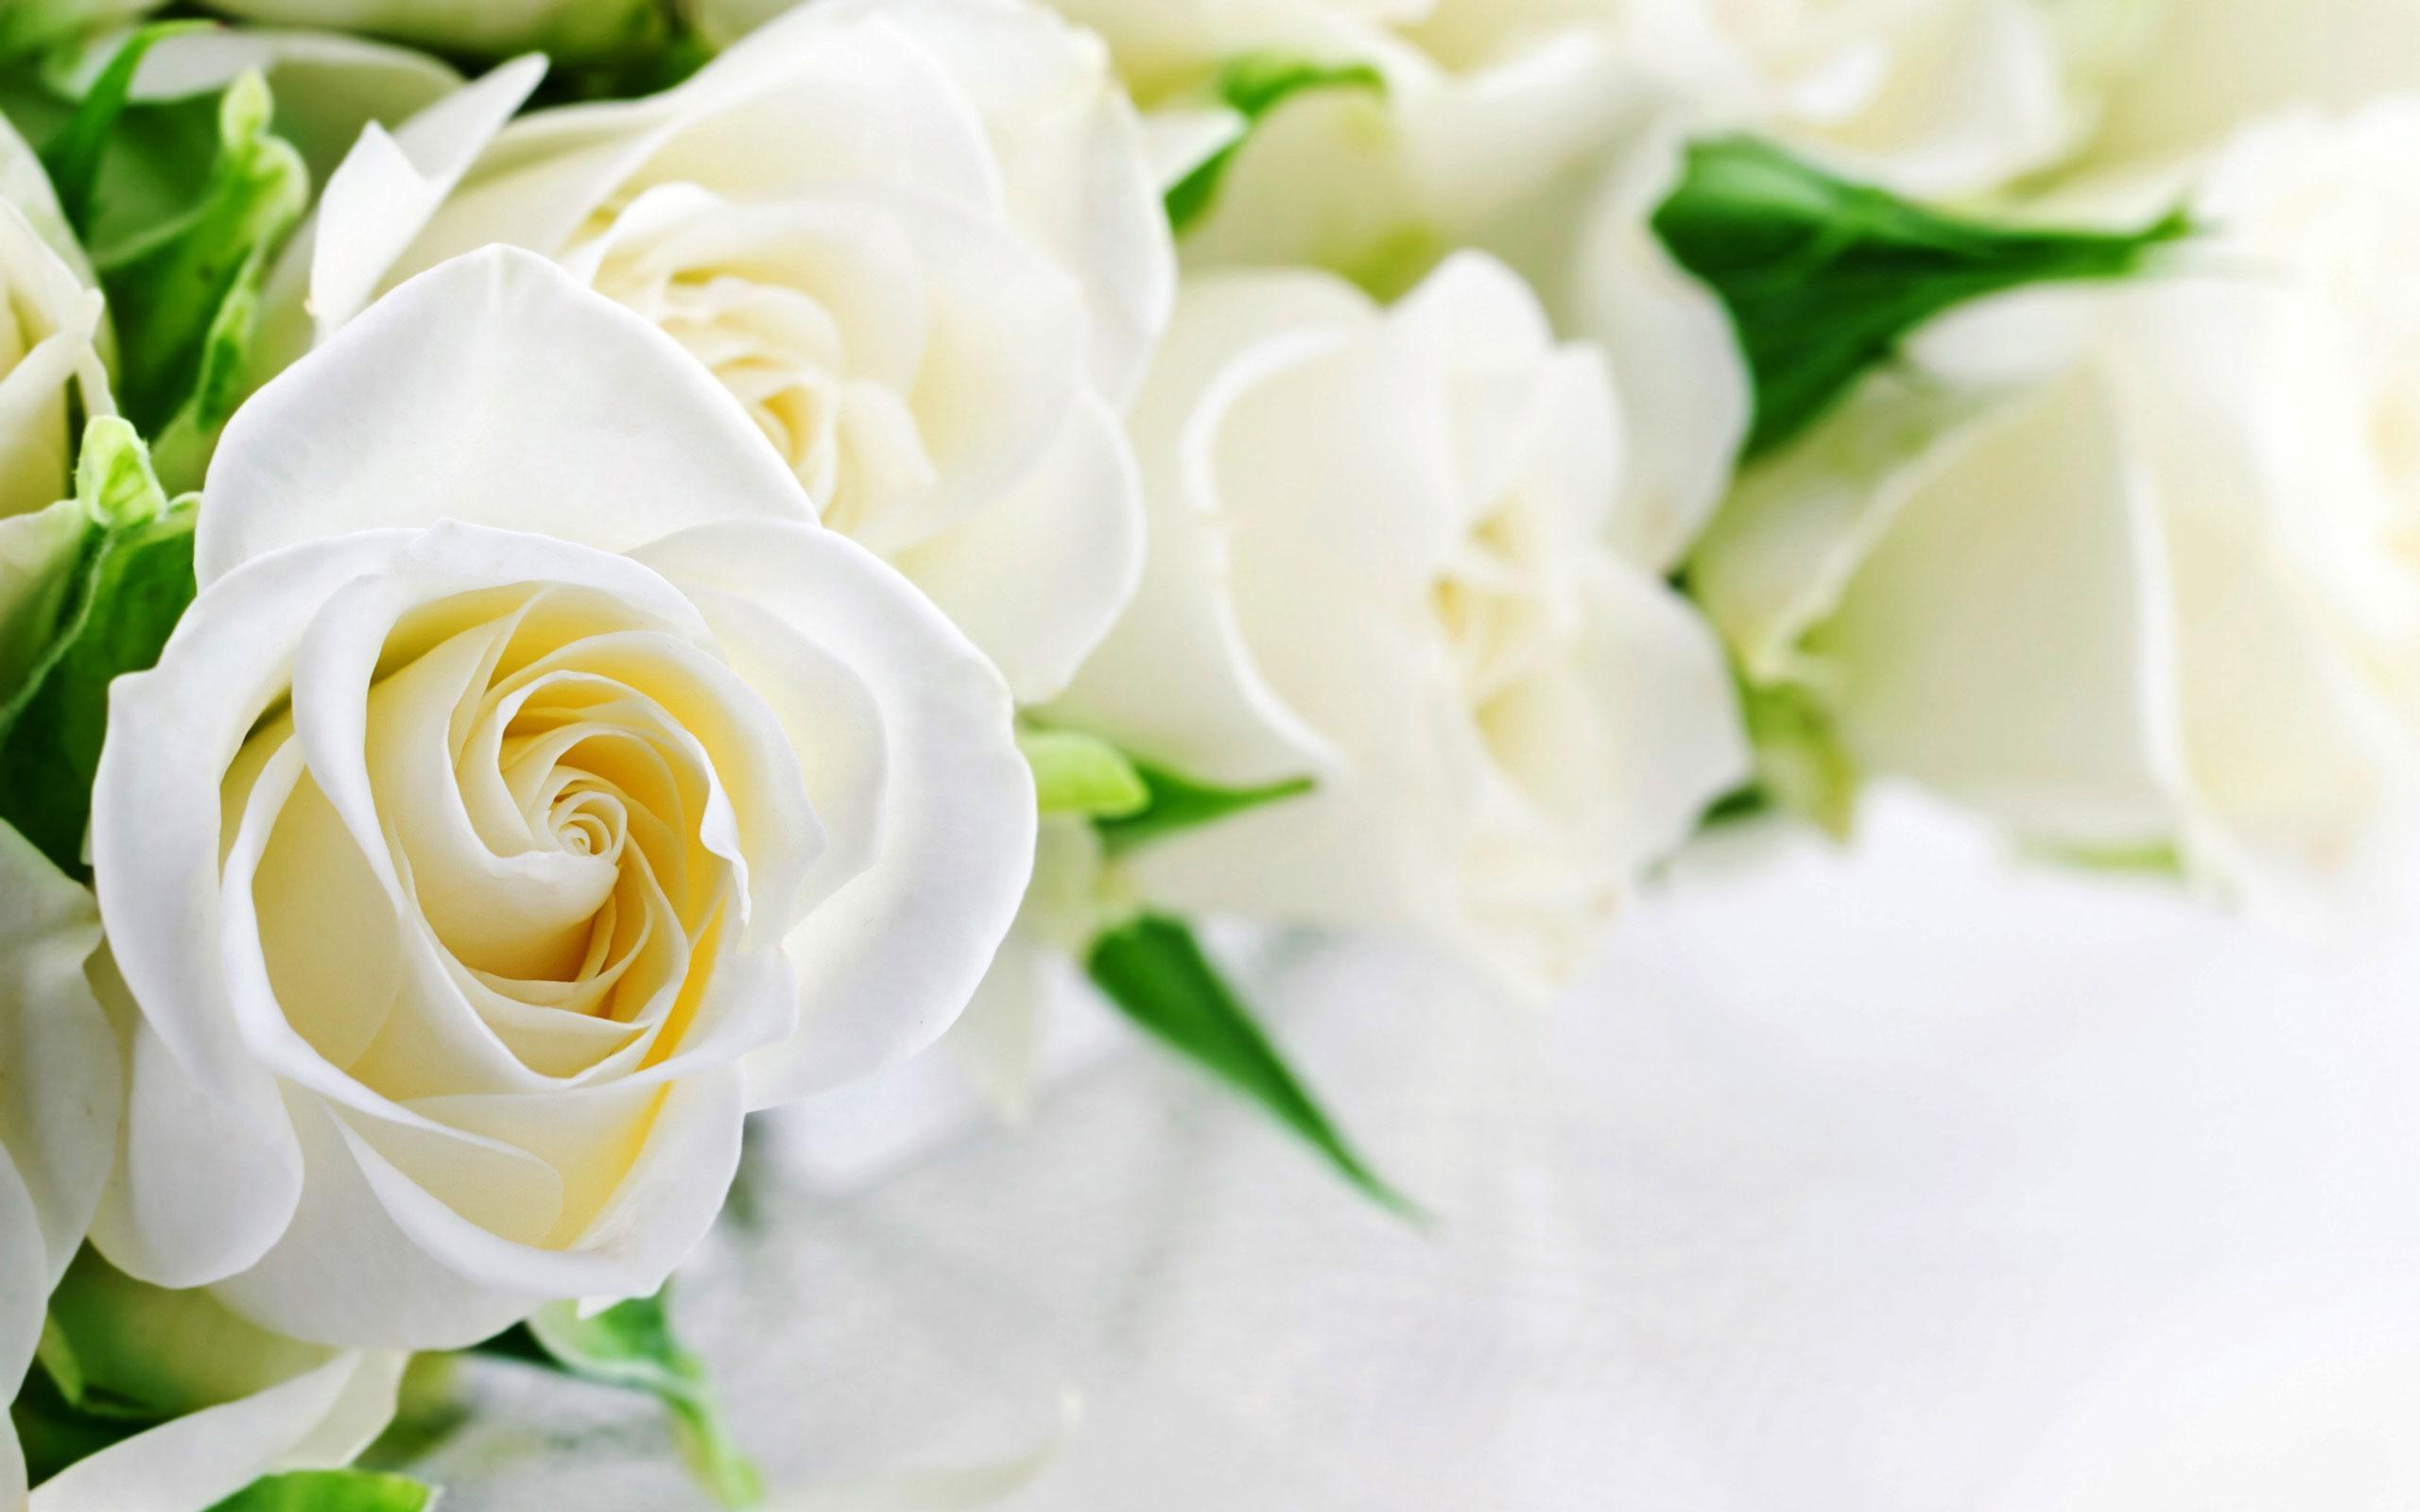 White Rose Live Wallpaper For Android APK Download